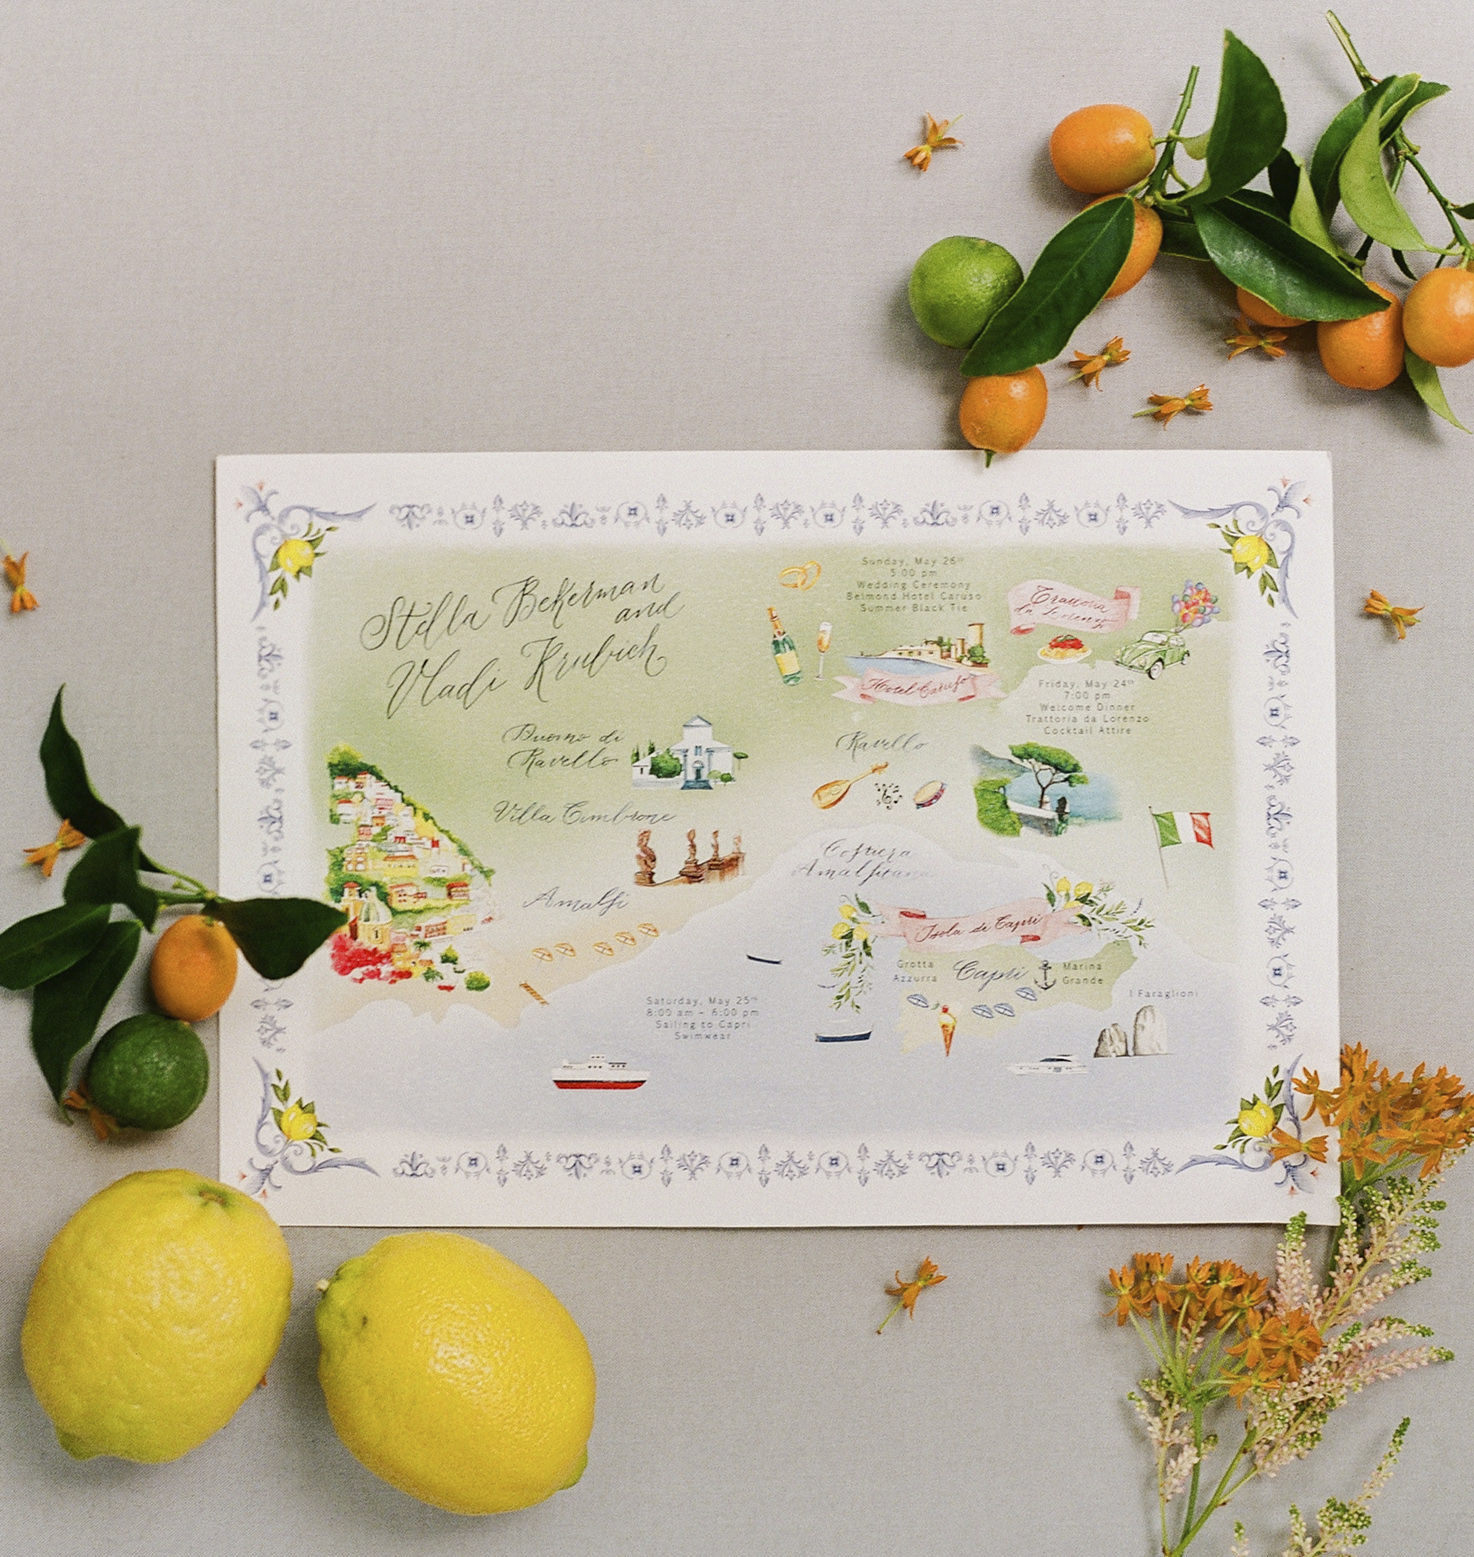 Wedding stationery in bright colors